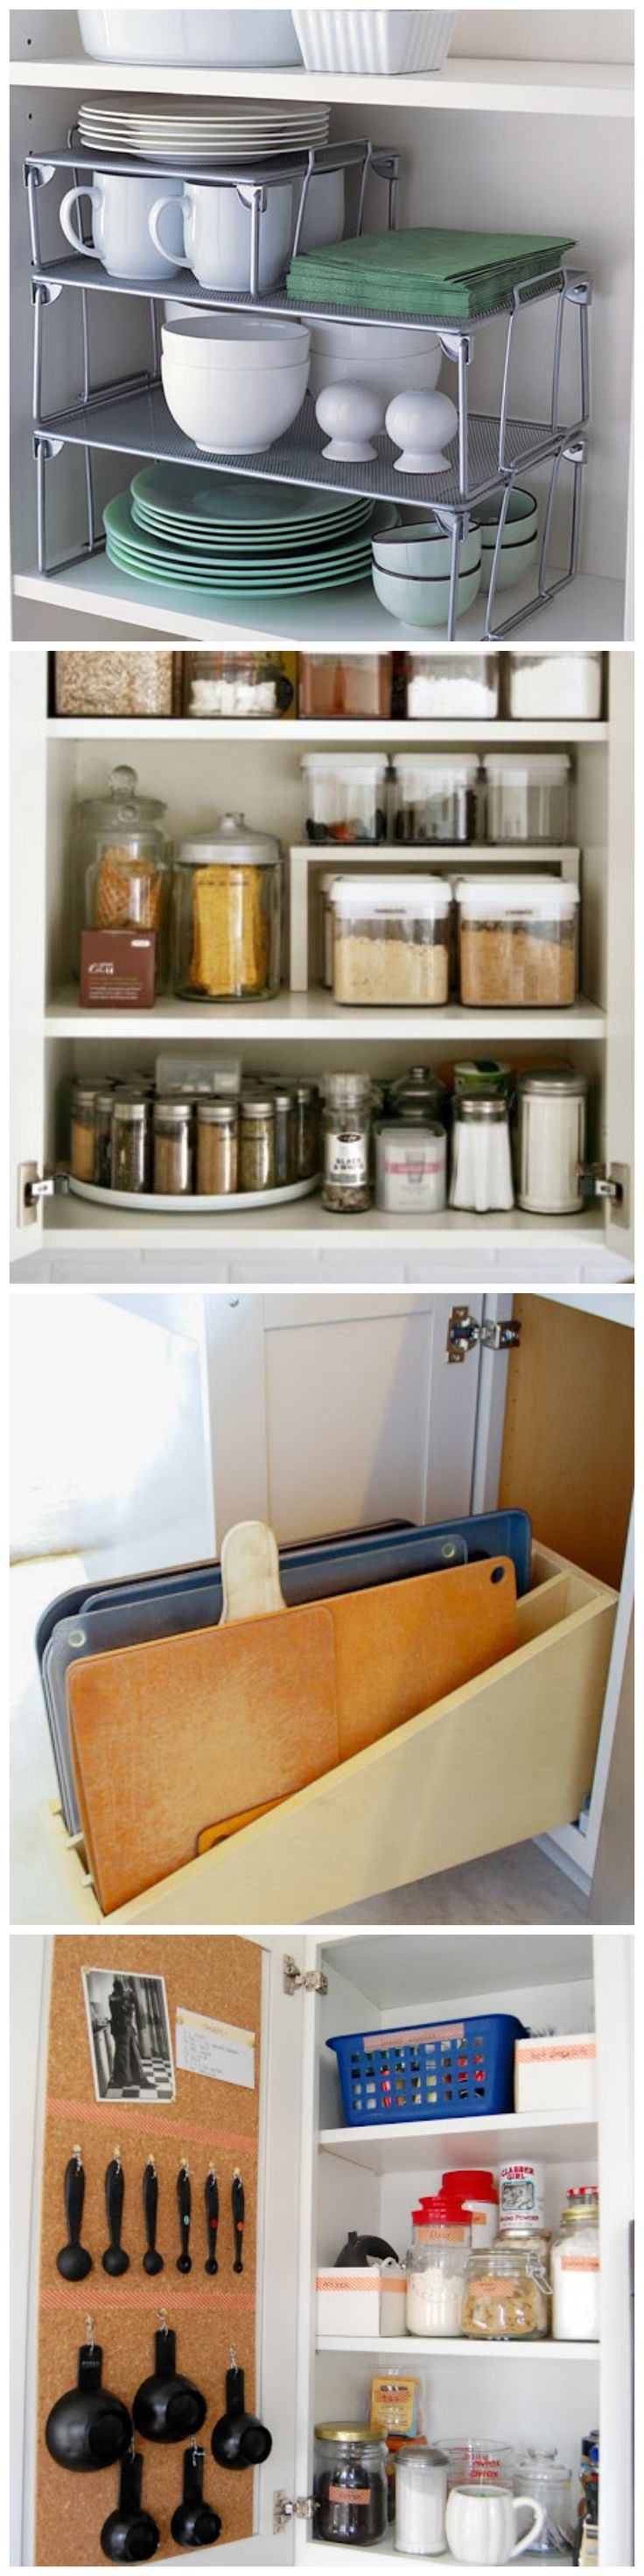 25 best ideas about small kitchen organization on for Small kitchen organizing ideas